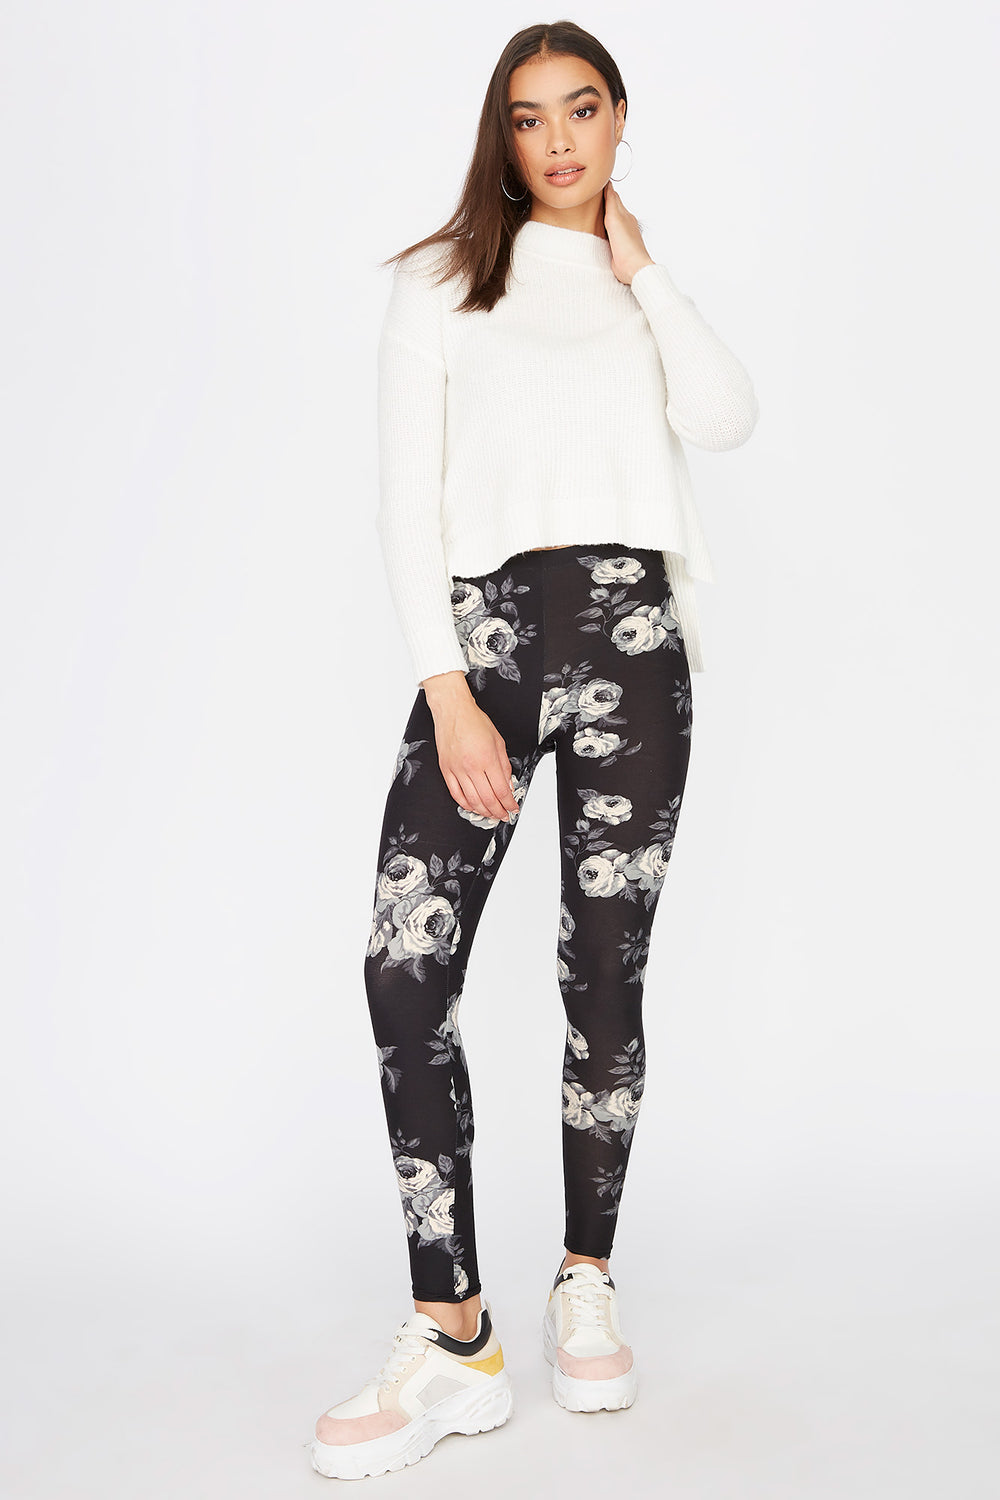 Floral Soft Legging Black with White